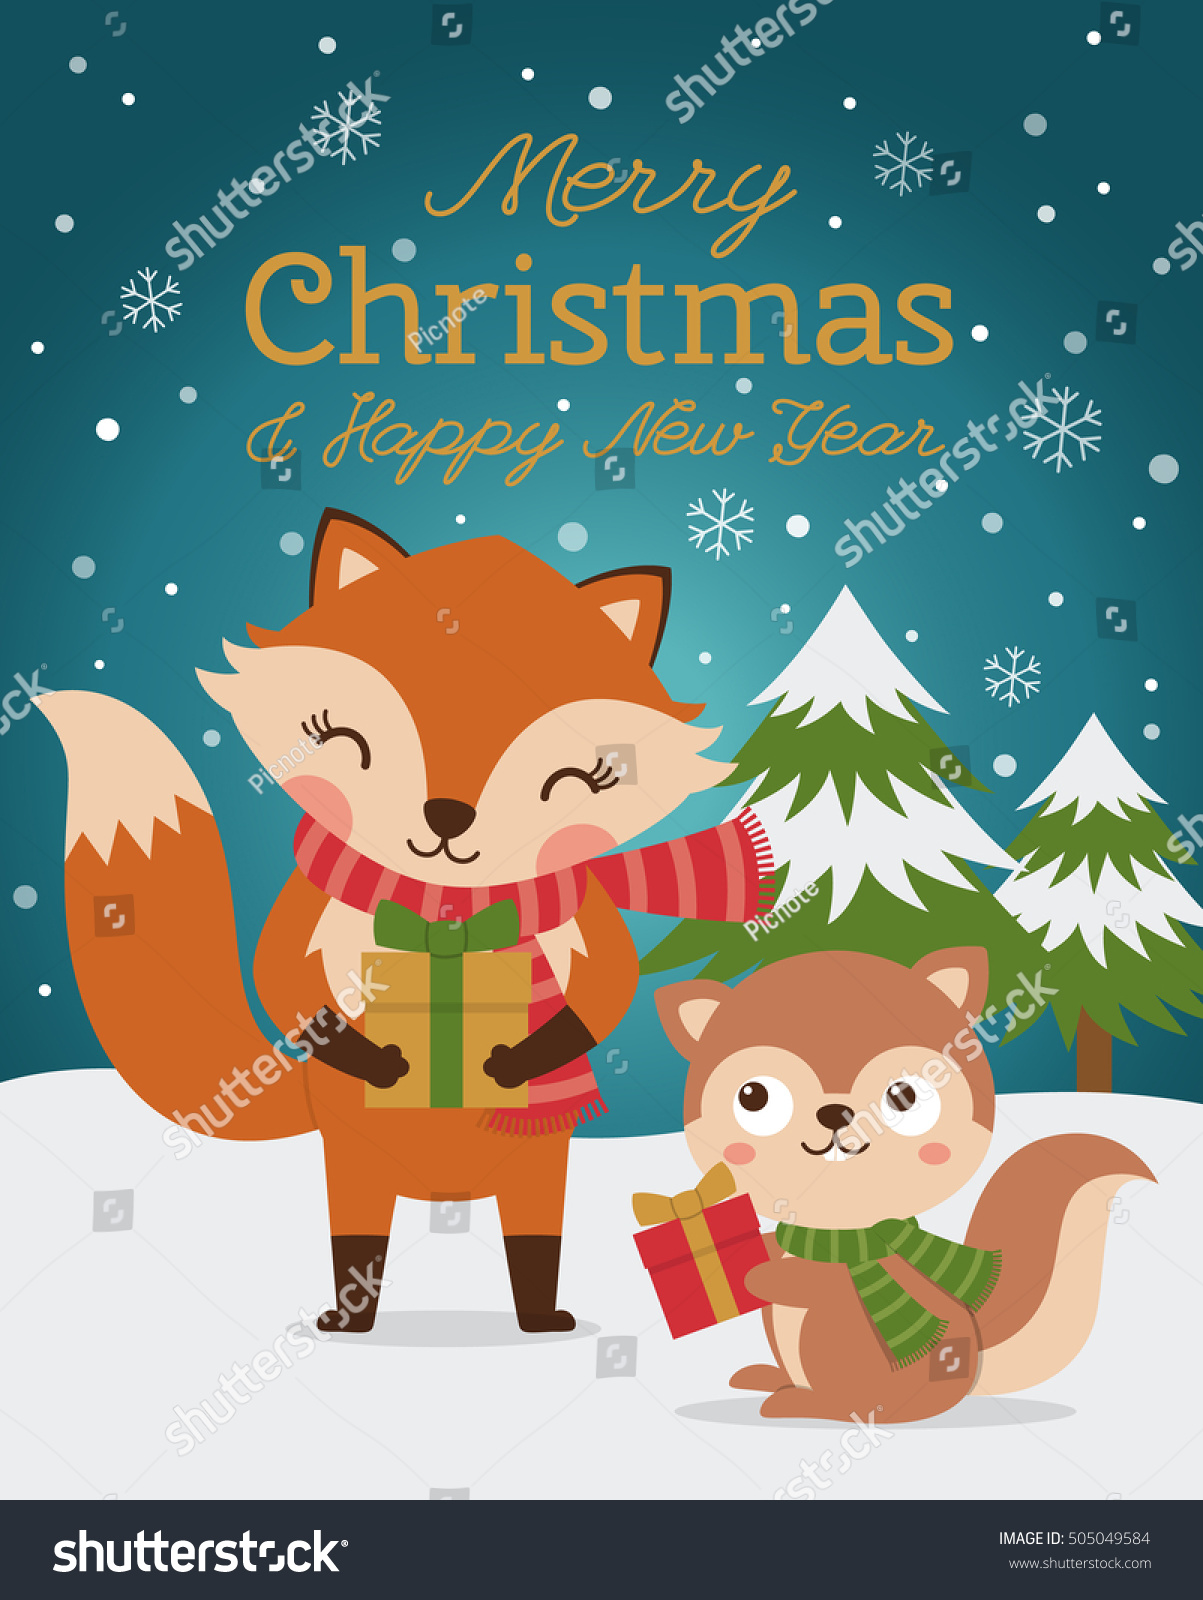 merry christmas and happy new year card with cute fox and squirrel illustration